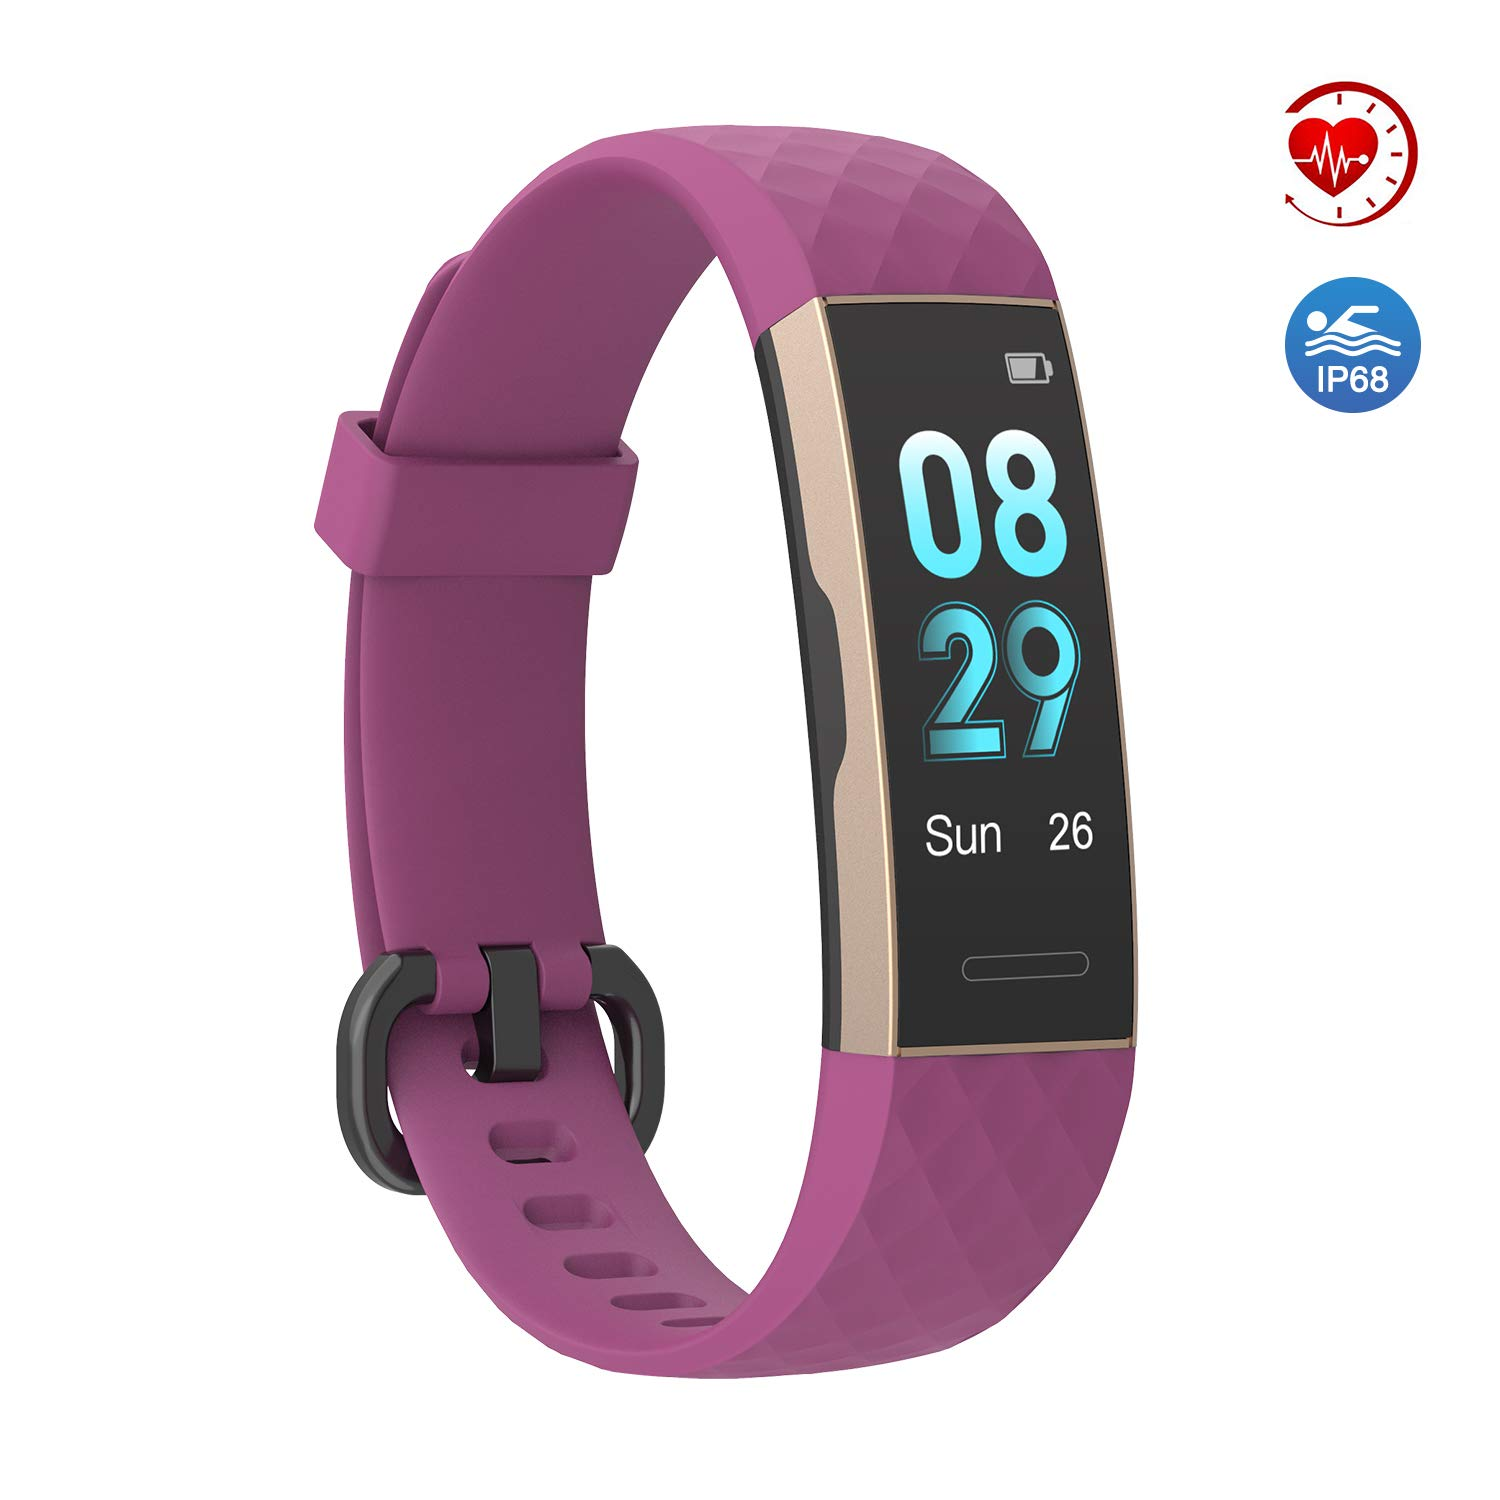 YoYoFit Sage Fitness Tracker Pedometer Watch,IP68 Waterproof Activity Tracker with Heart Rate Monitor,Step Calorie Counter,Sleep Monitor,Multi-Sports Model with Connected GPS for Men Women Kids